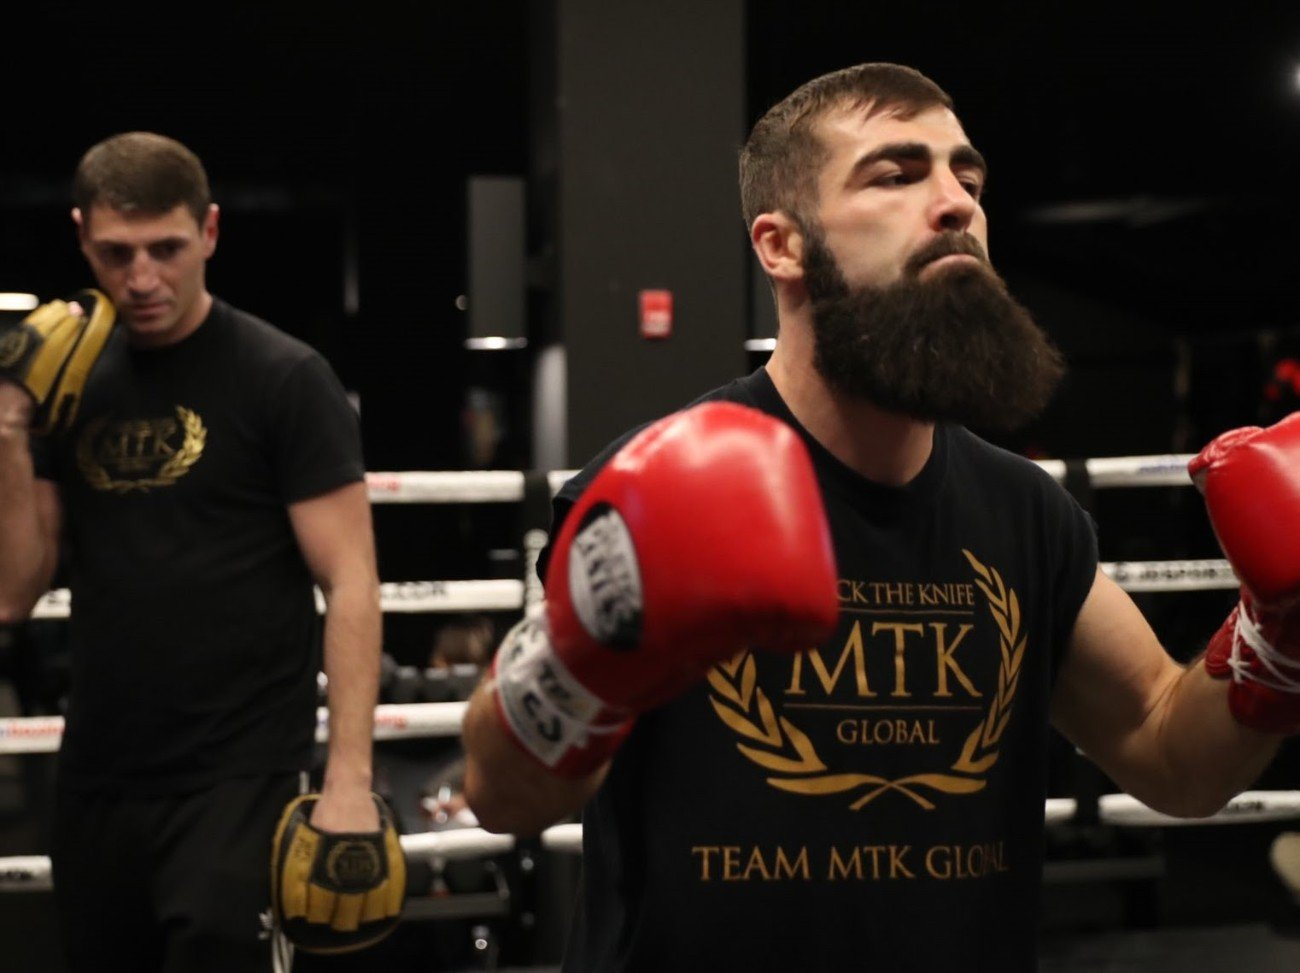 Jono Carroll, Maxi Hughes - It's been a sensational period for Irish superstar Jono Carroll - and he's determined to continue his momentum in style when he takes on Maxi Hughes next month.